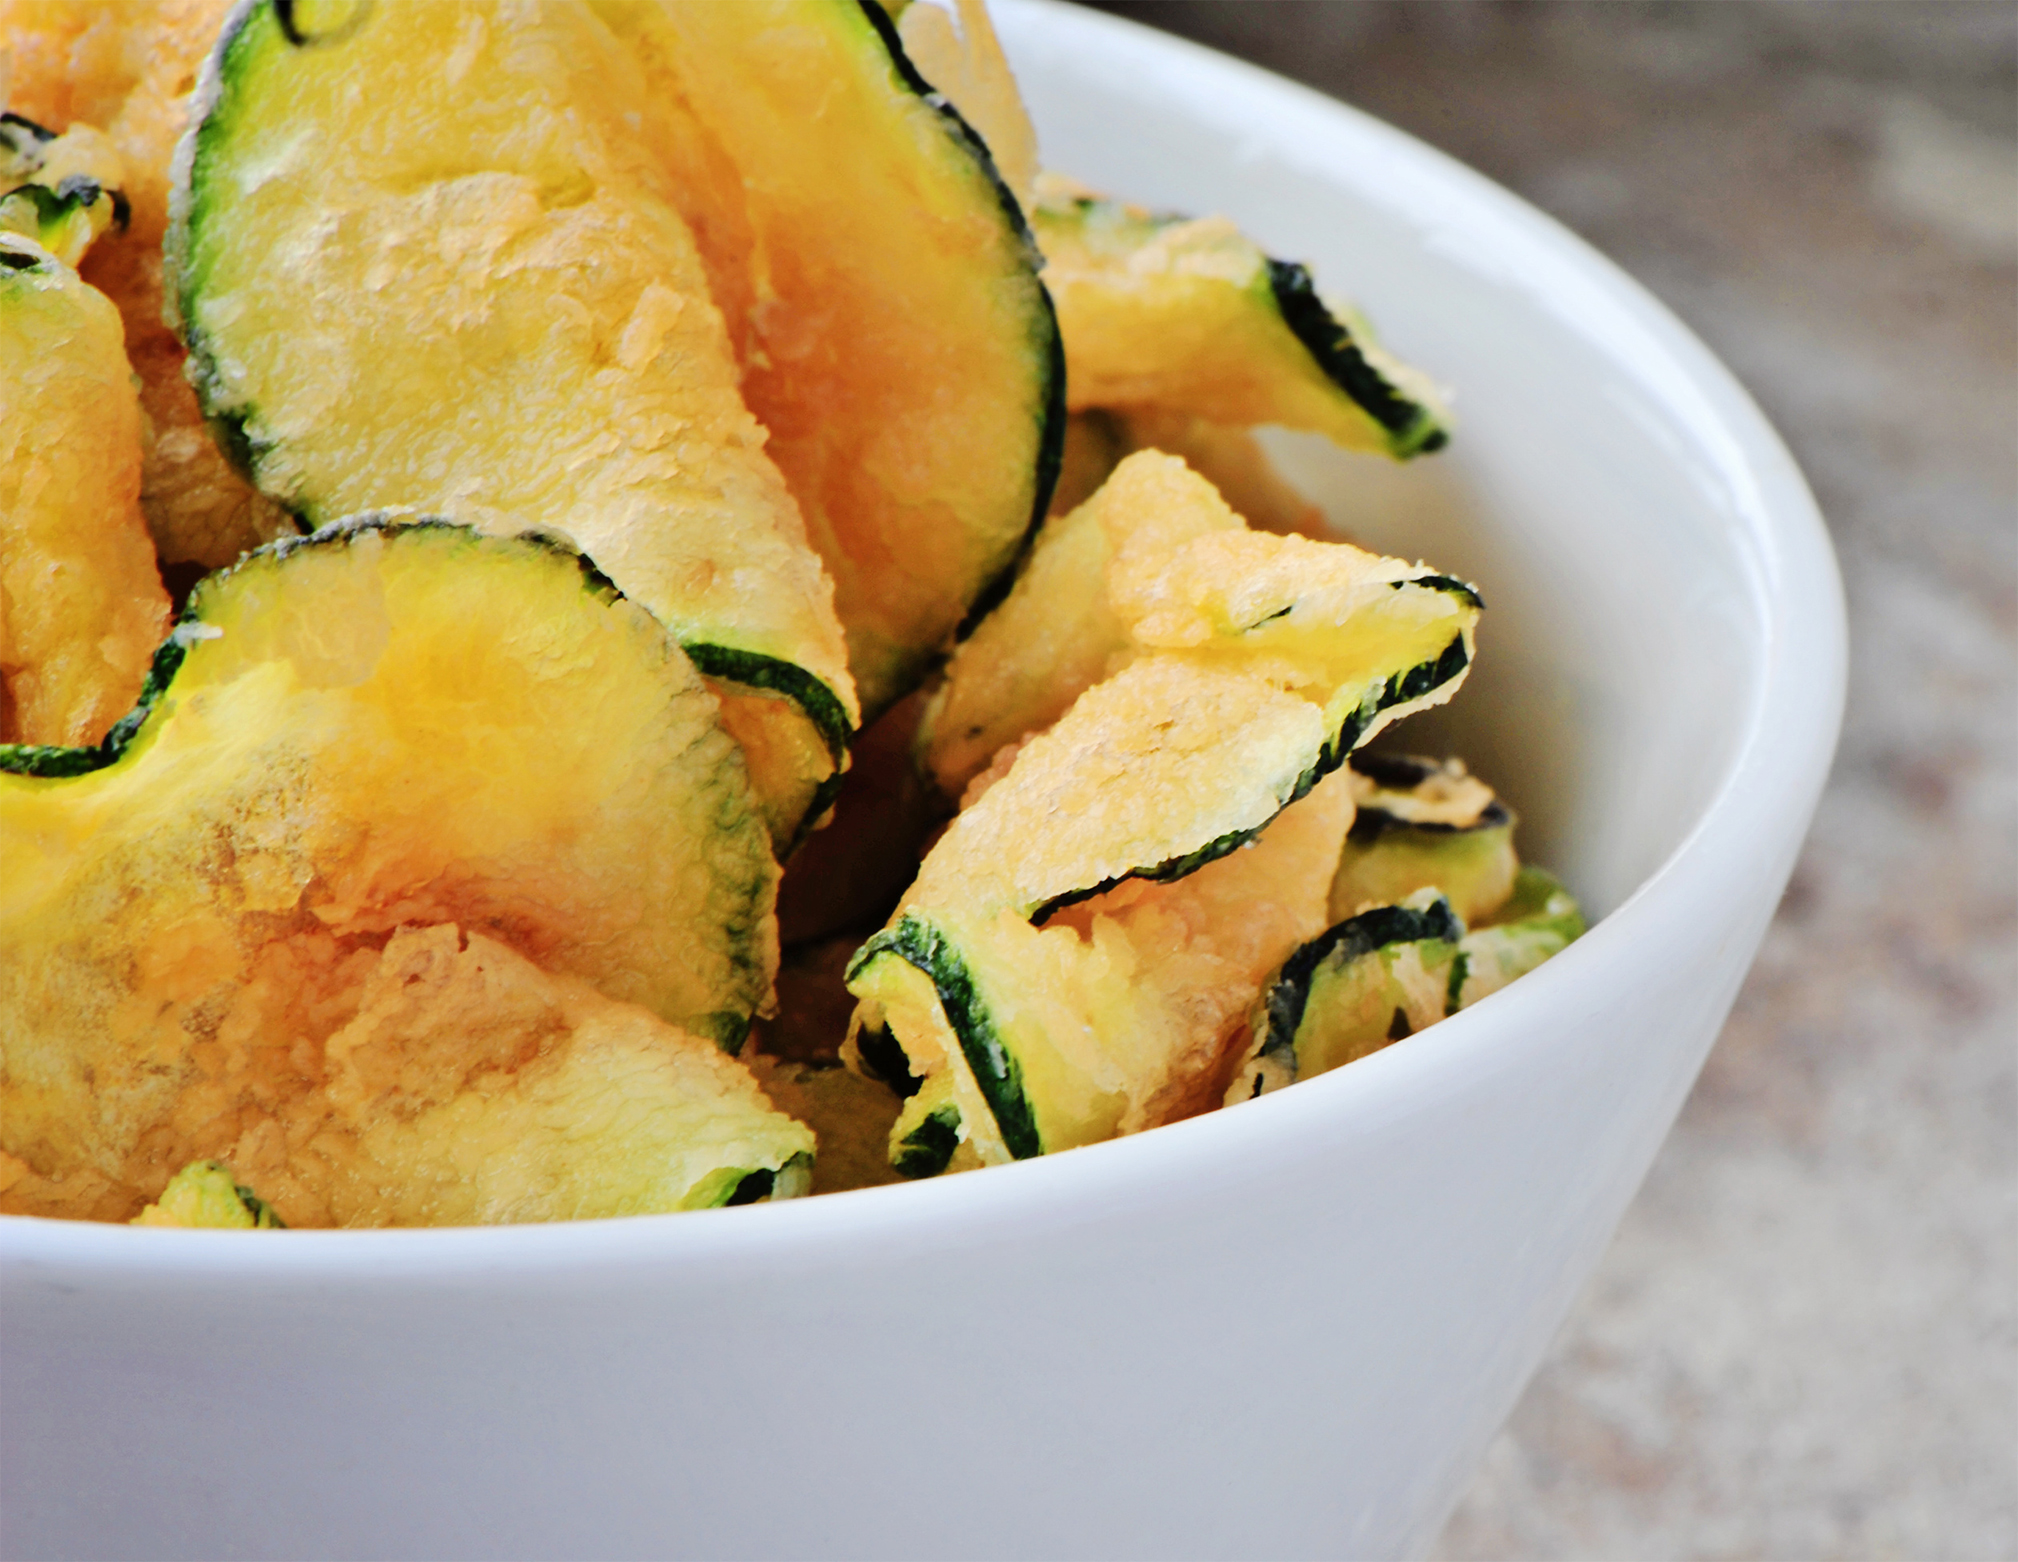 Zucchini chips picture free stock Baked zucchini chips - My Zucchini Recipes picture free stock